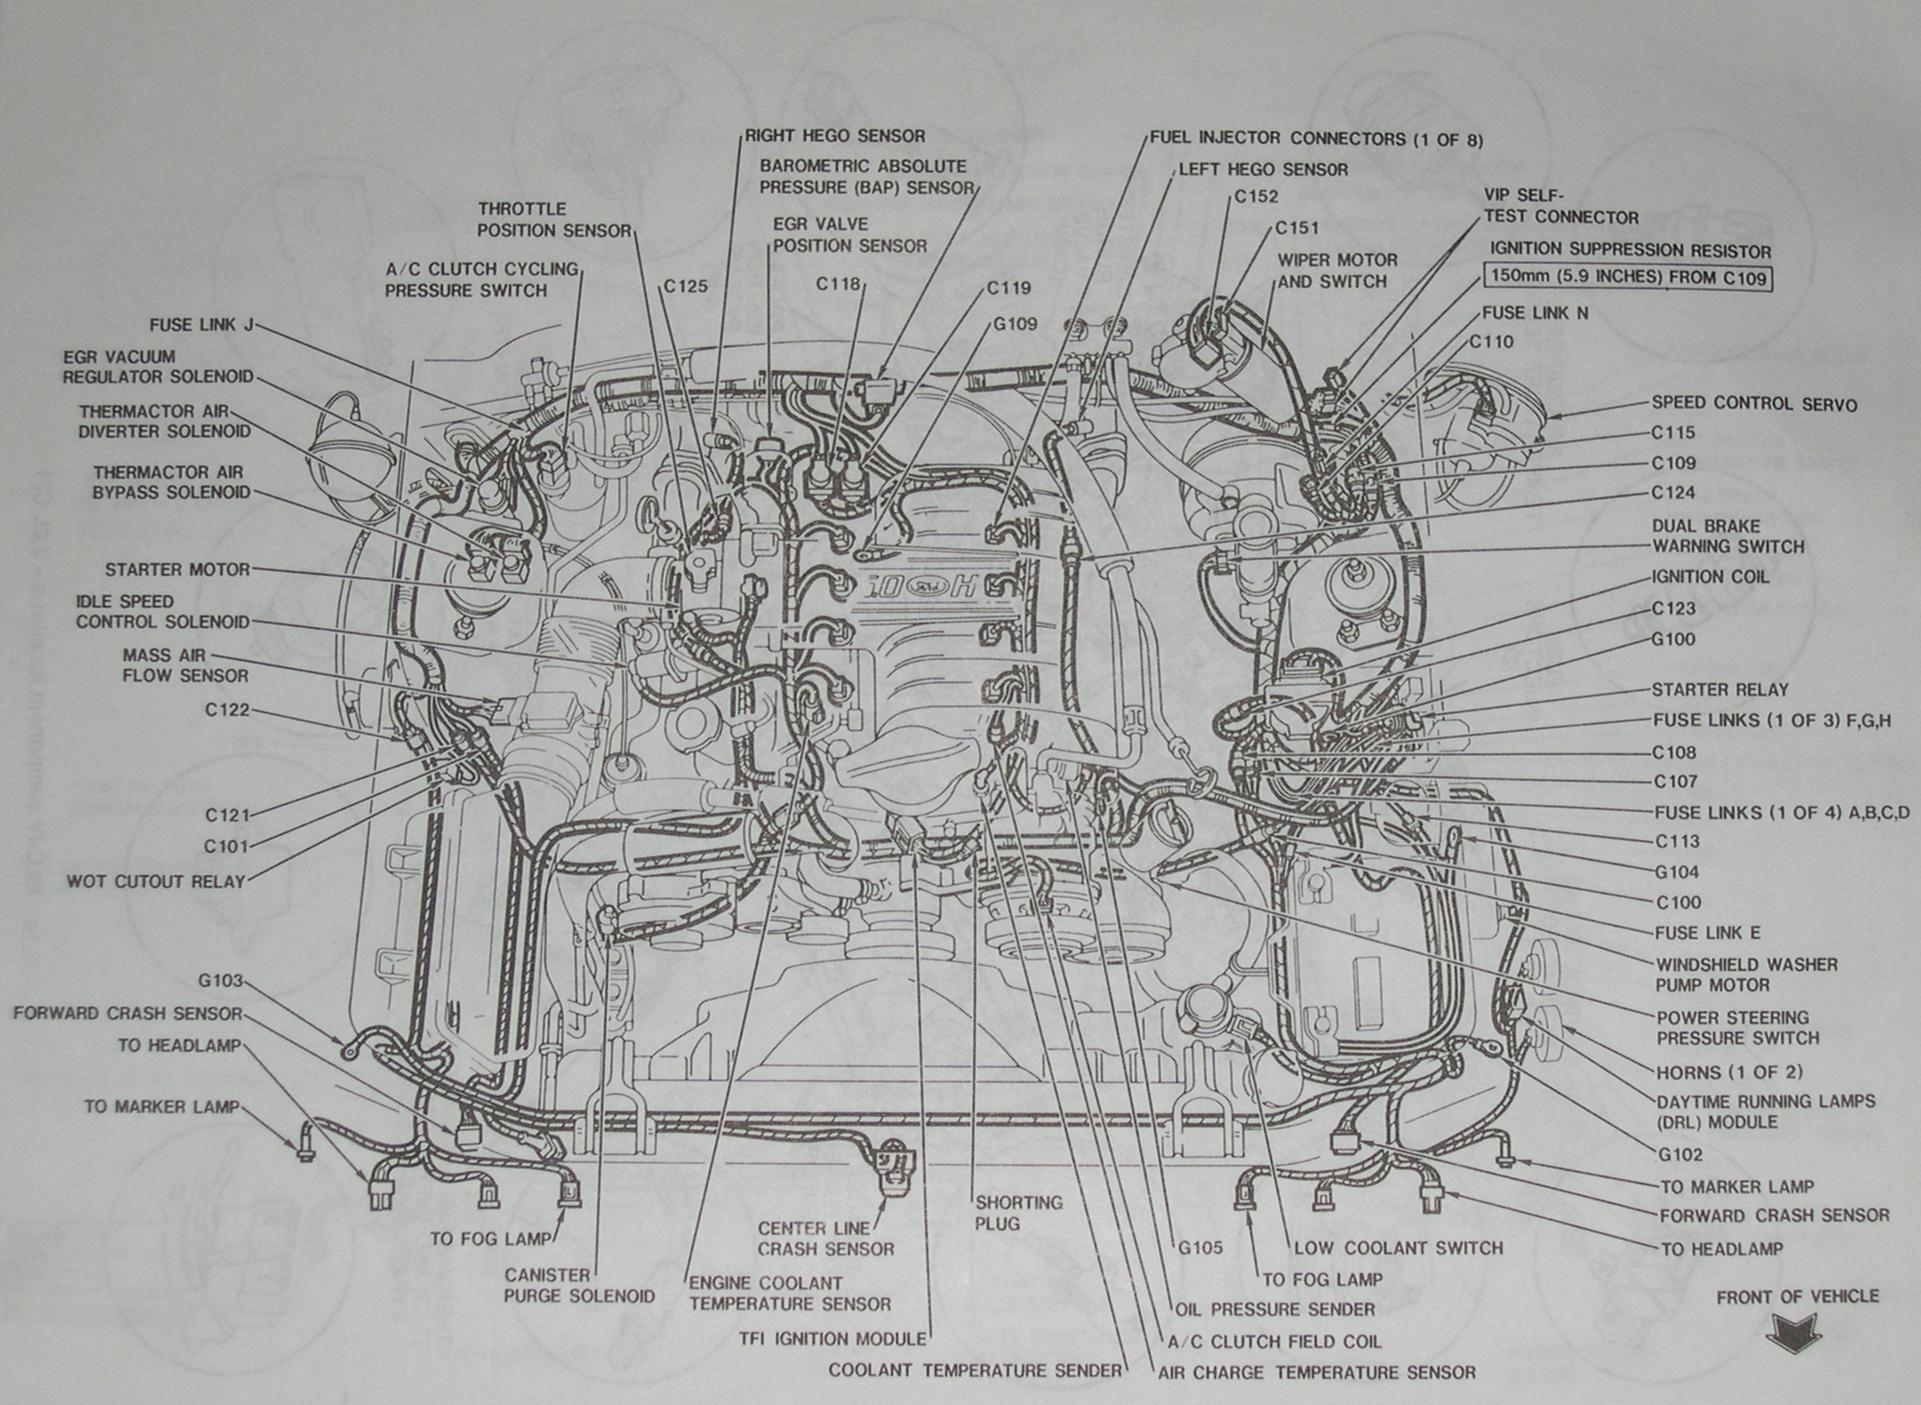 Mustang Engine Layout 94 95 mustang 5 0 detailed mustang engine layout 1995 mustang gt wiring diagram at bayanpartner.co